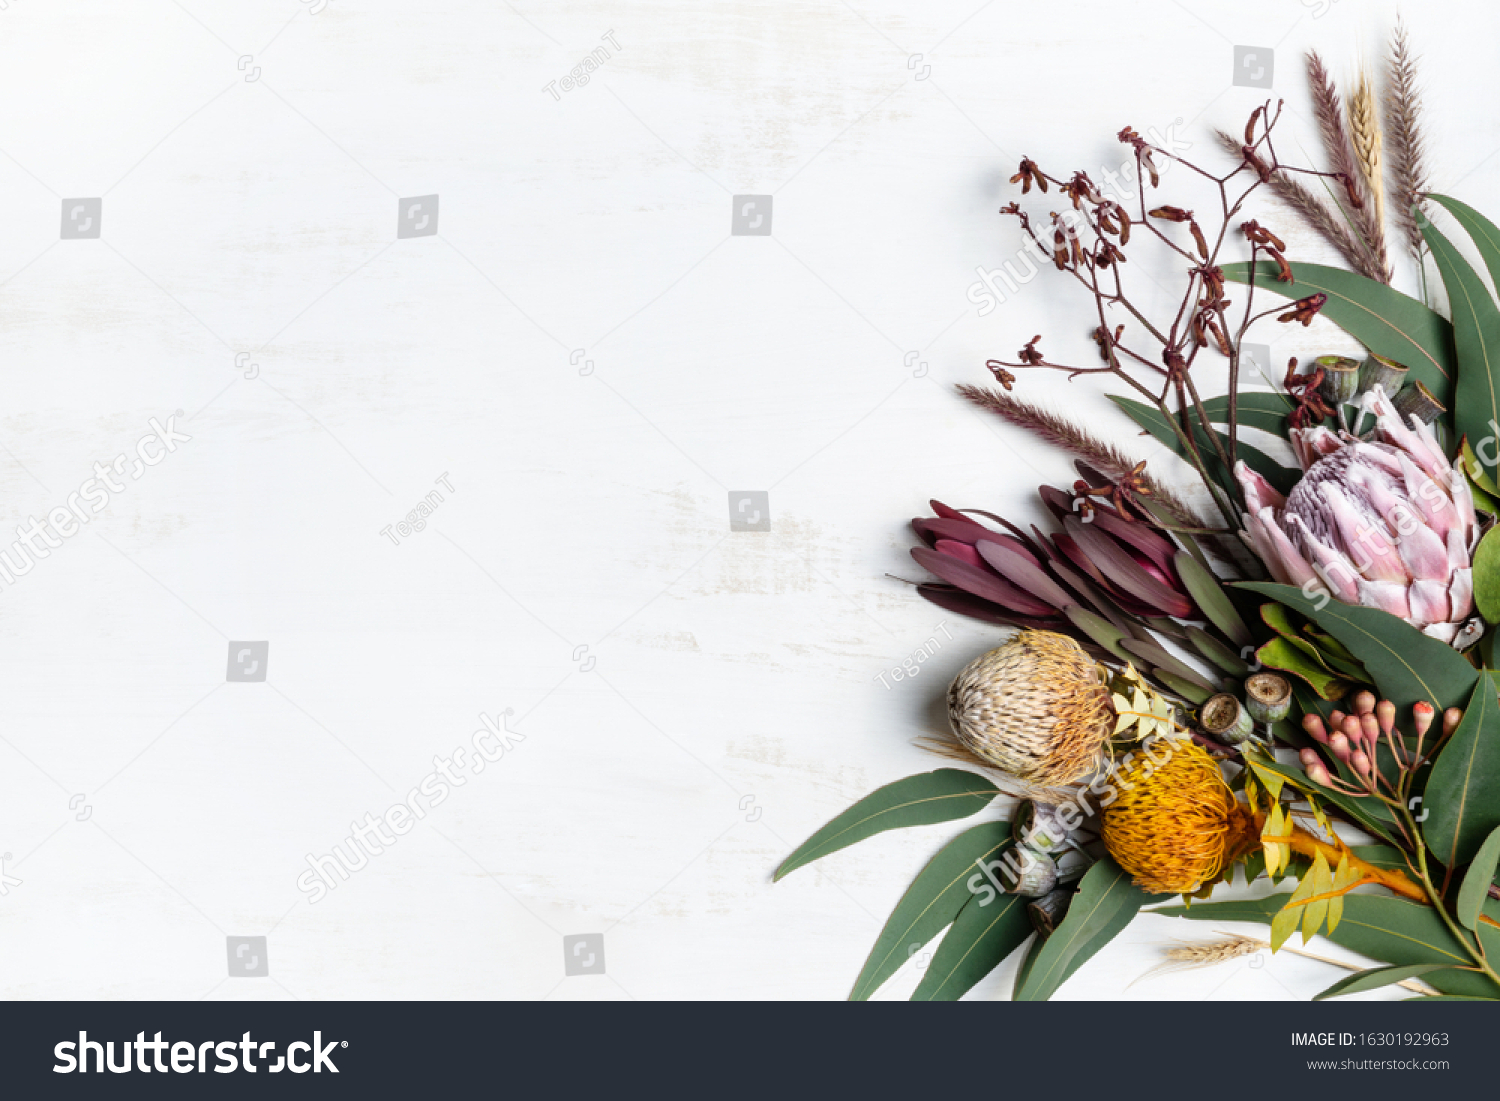 Beautiful flat lay floral arrangement of mostly Australian native flowers, including protea, banksia, kangaroo paw, eucalyptus leaves and gum nuts on a rustic white background. #1630192963